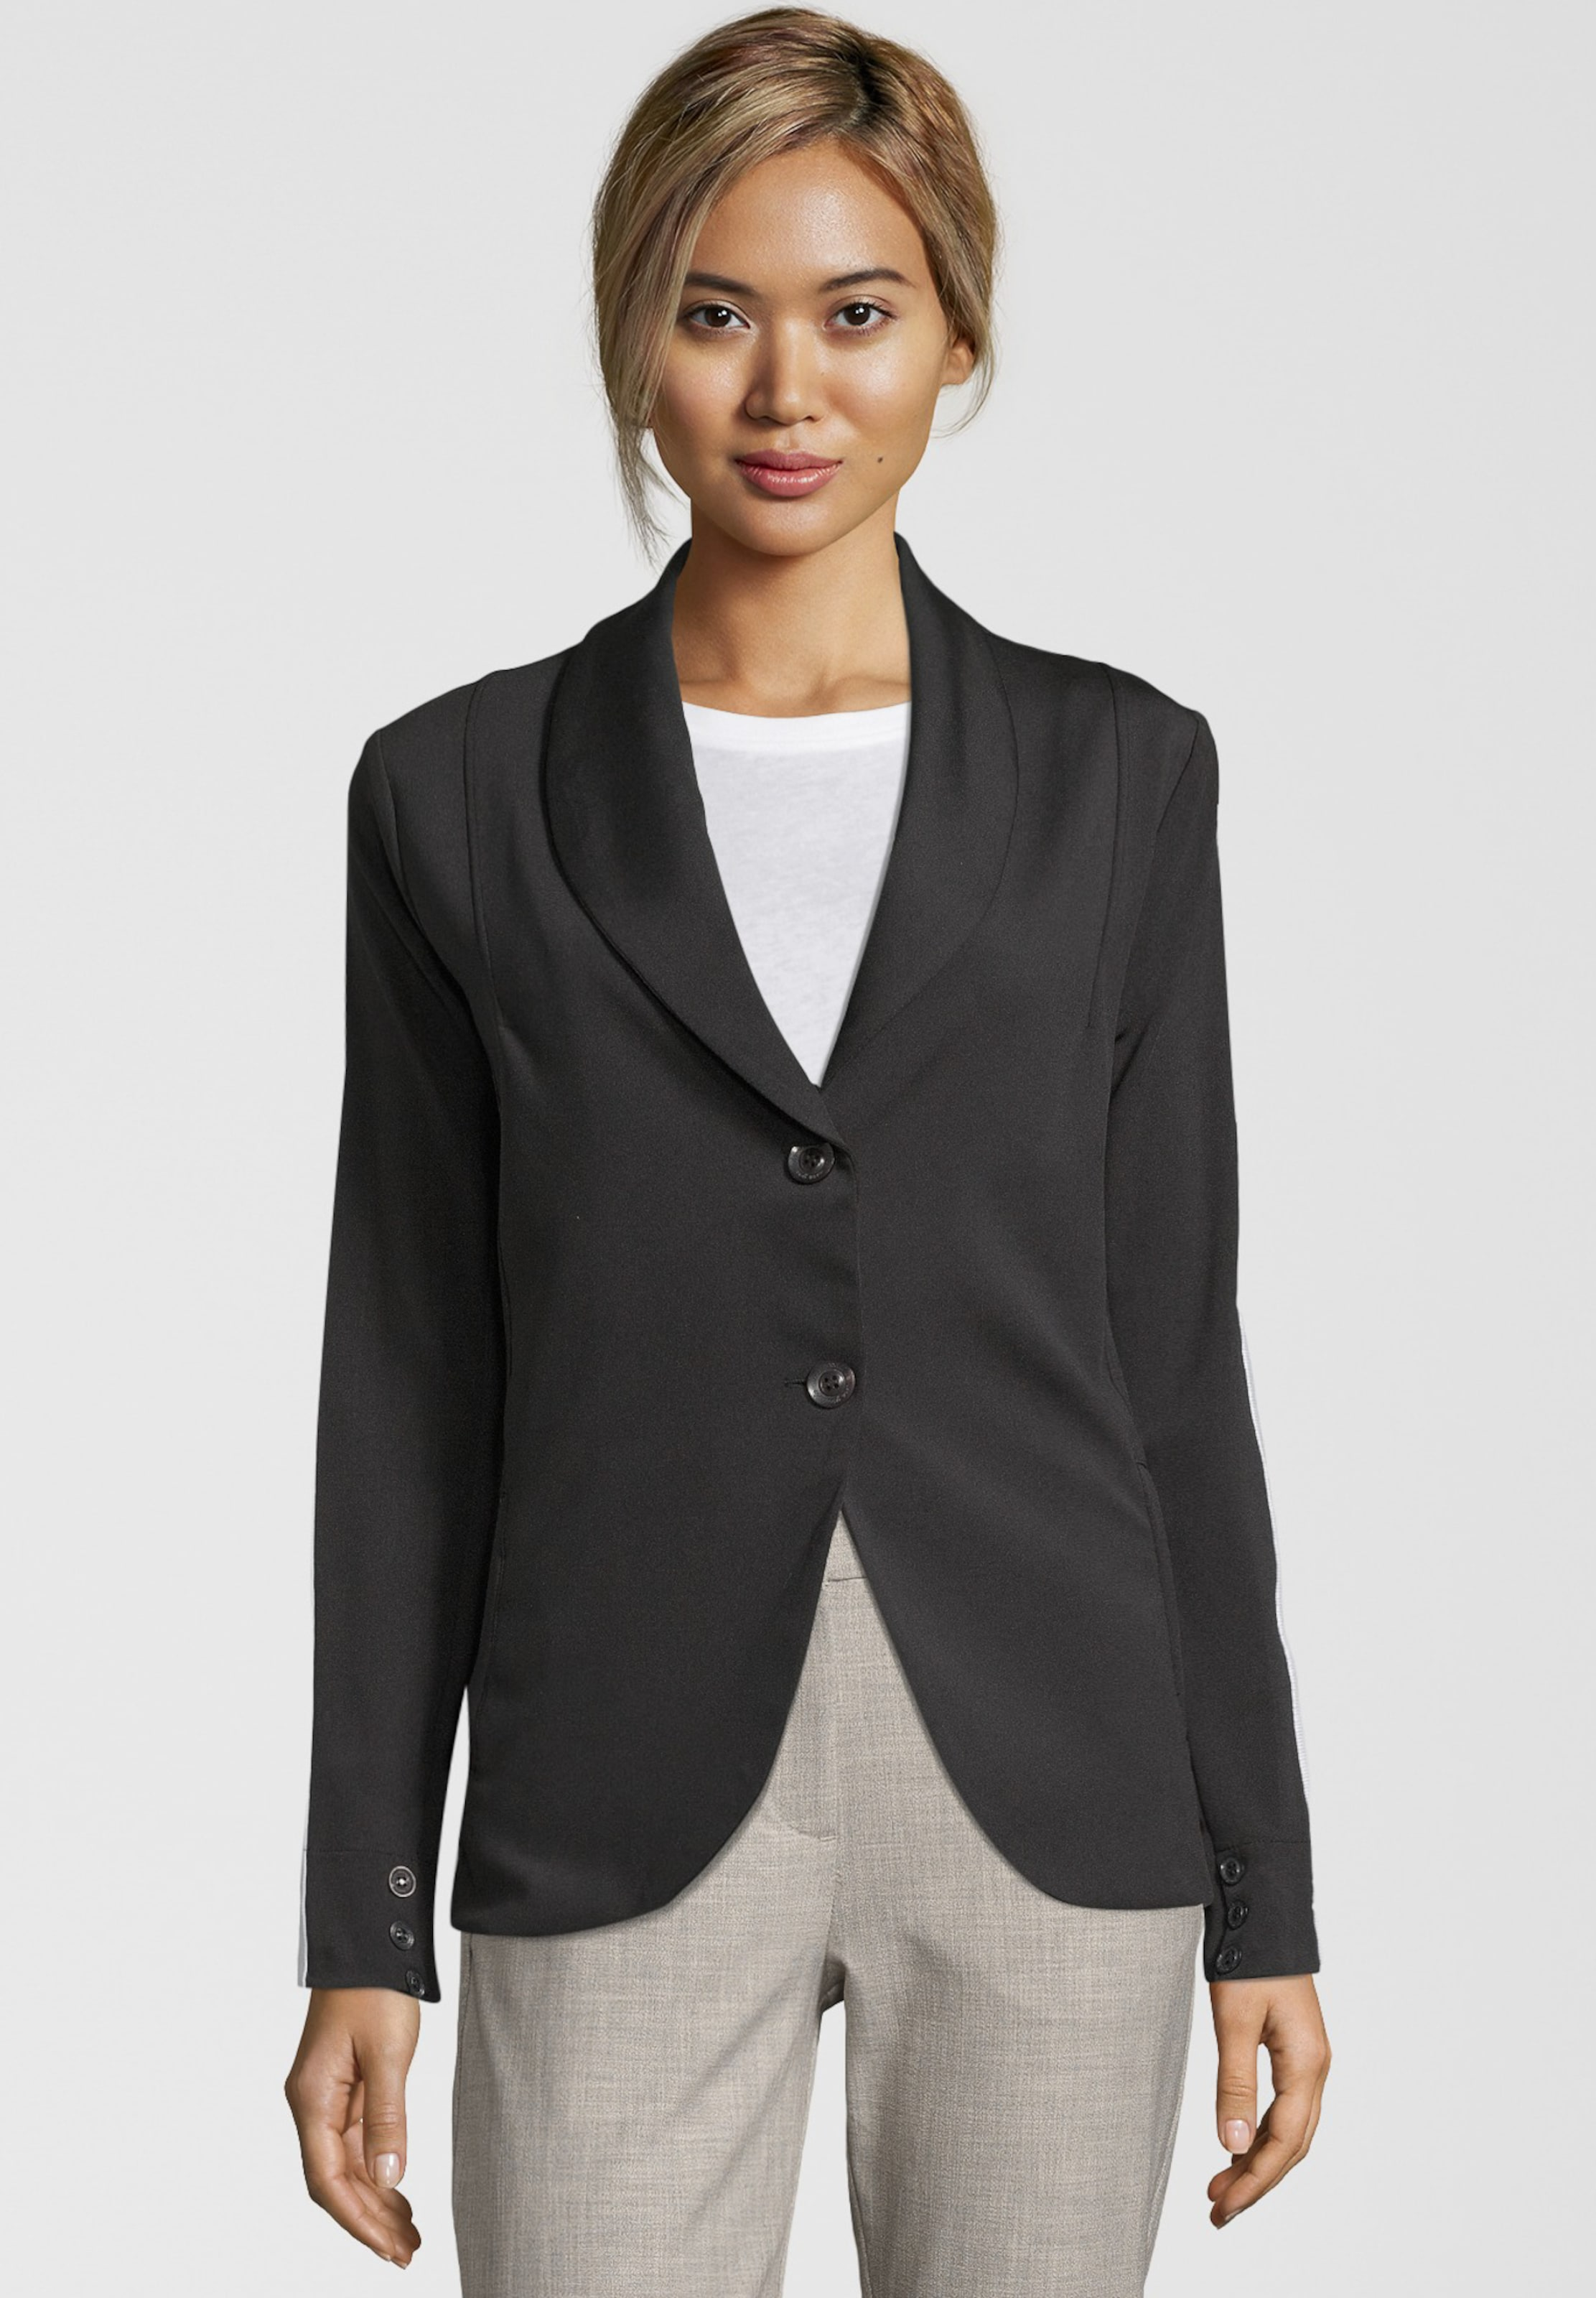 Blazer SchwarzWeiß Miss In Goodlife Miss Goodlife 4qjL3R5Ac